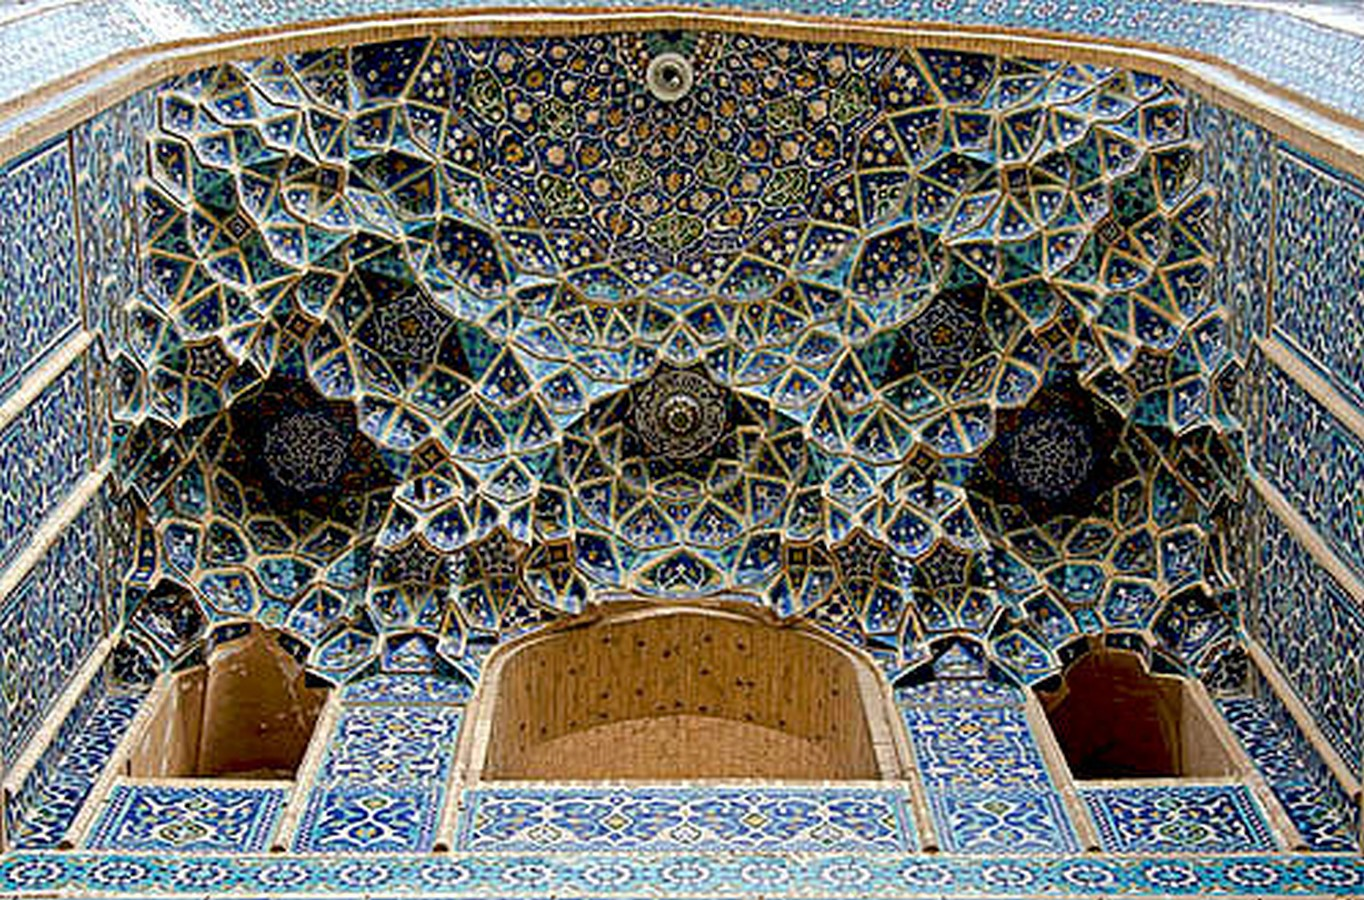 Masjed-e Jame, Iran: The oldest Friday mosque in Iran - Sheet5